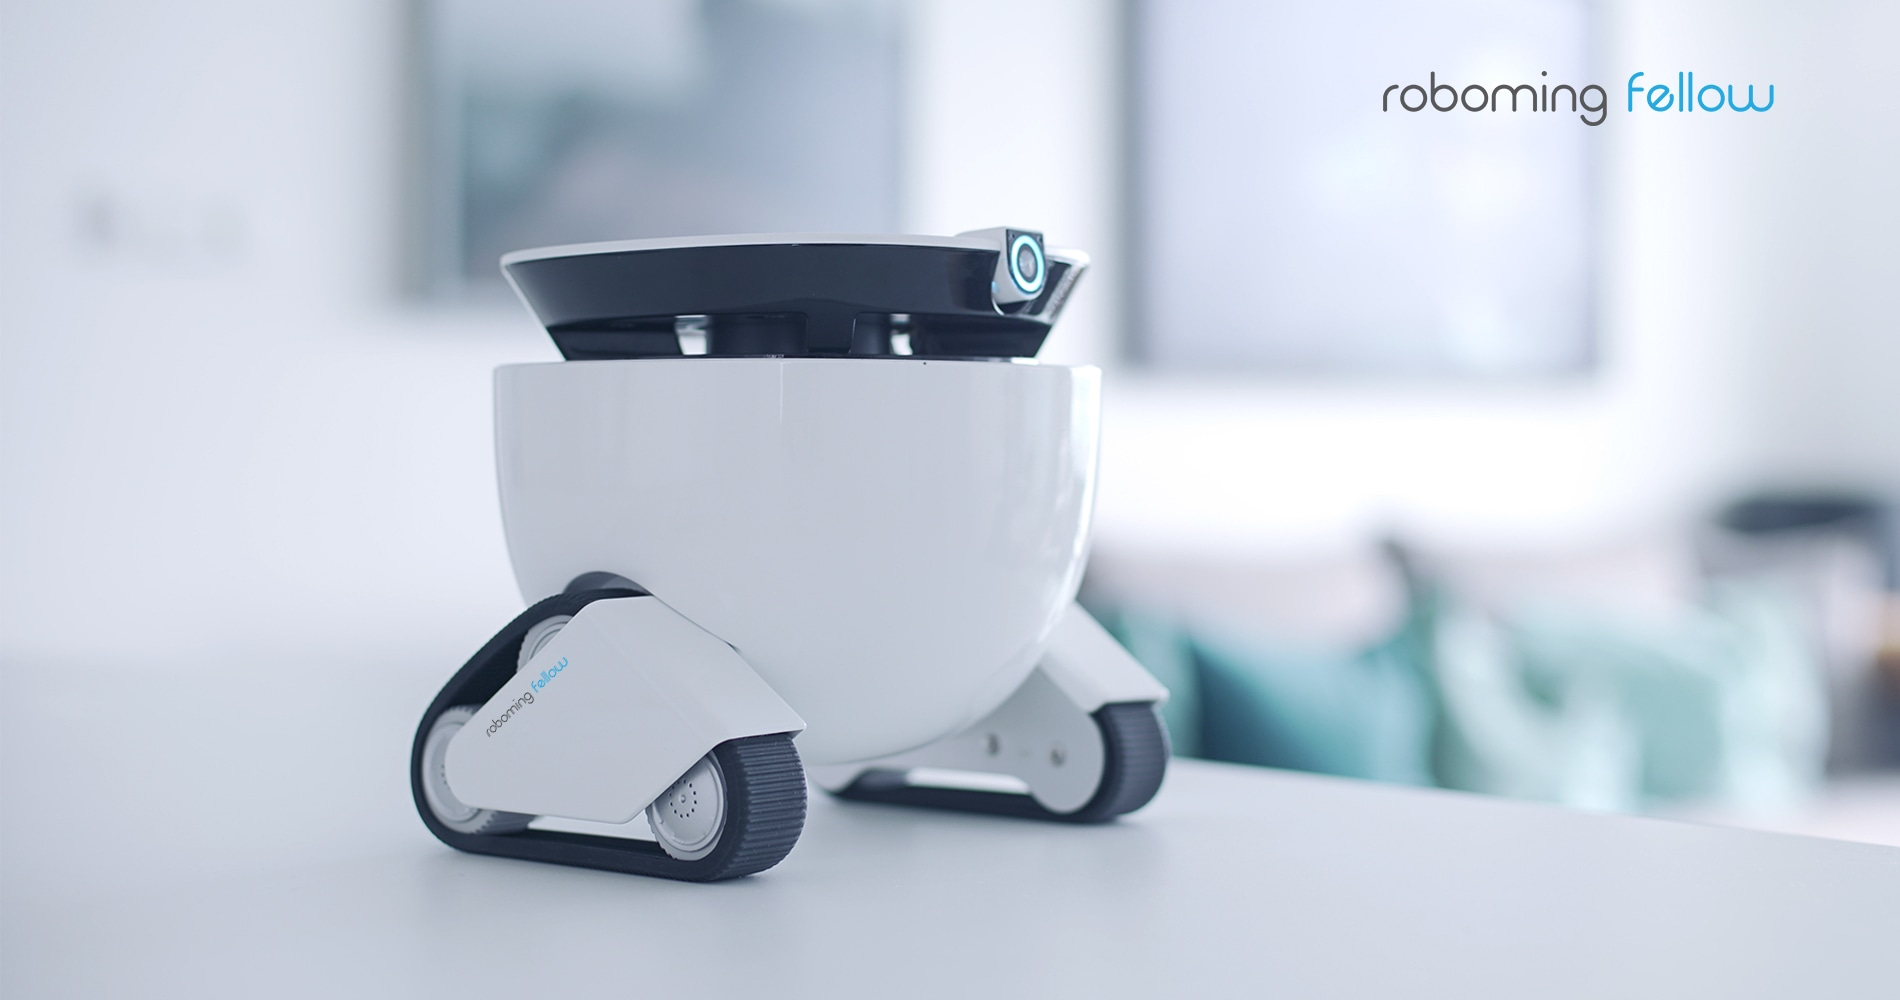 Roboming Fellow A Personal Robot For Companionship Home